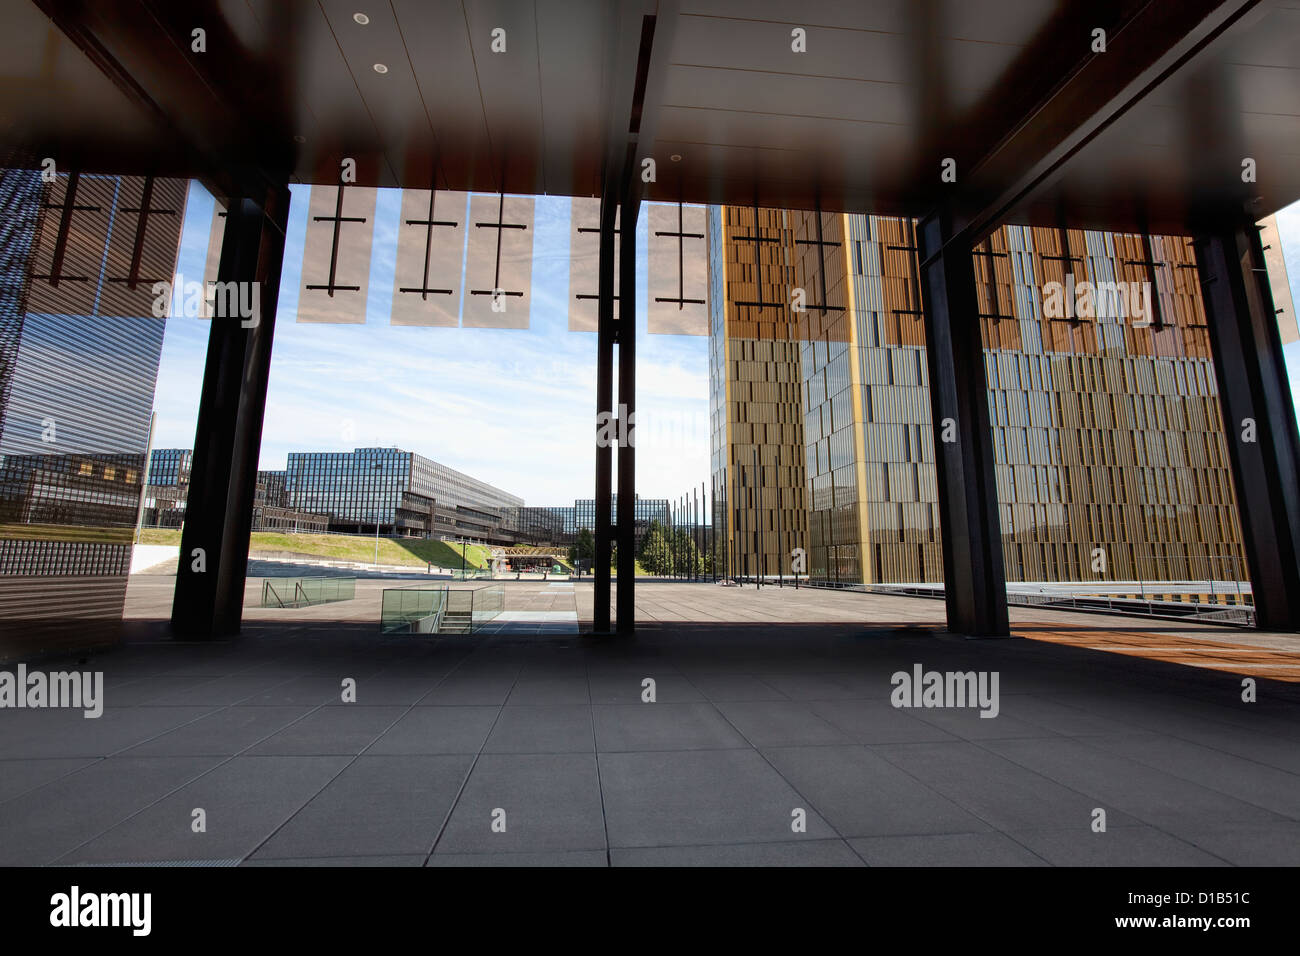 European Court of Justice, European Commission, Jean Monnet Building, Kirchberg Plateau, Luxembourg City, Europe - Stock Image